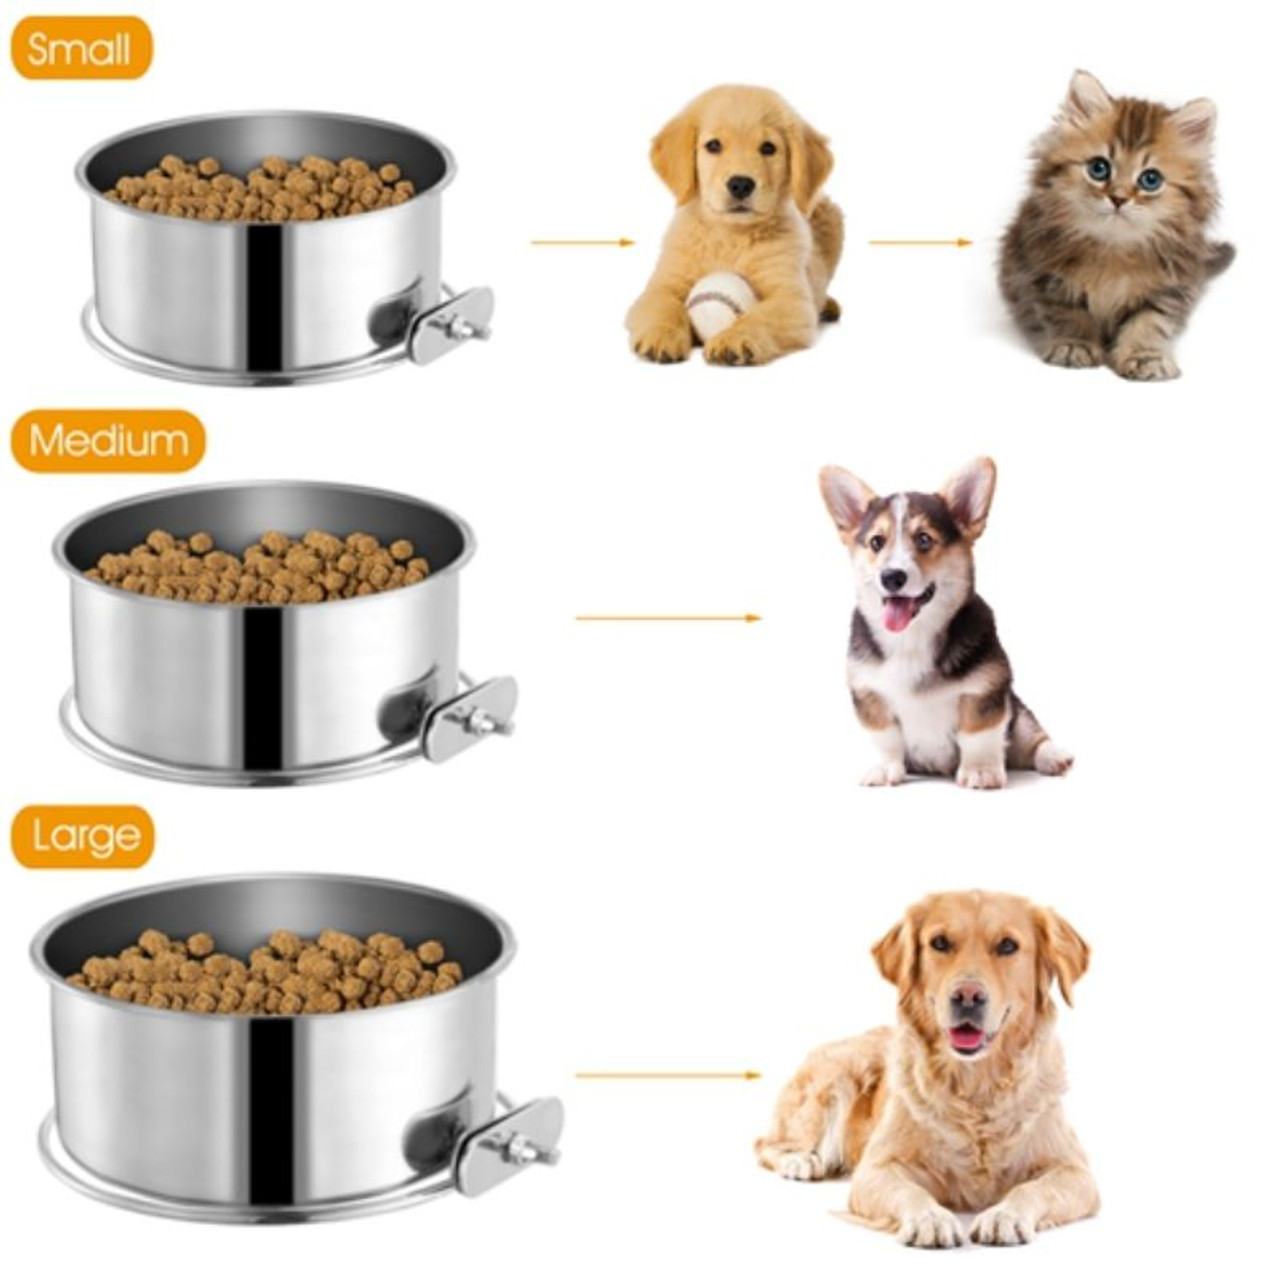 Stainless Steel Dog Food Bowl - 1 or 2 Pack